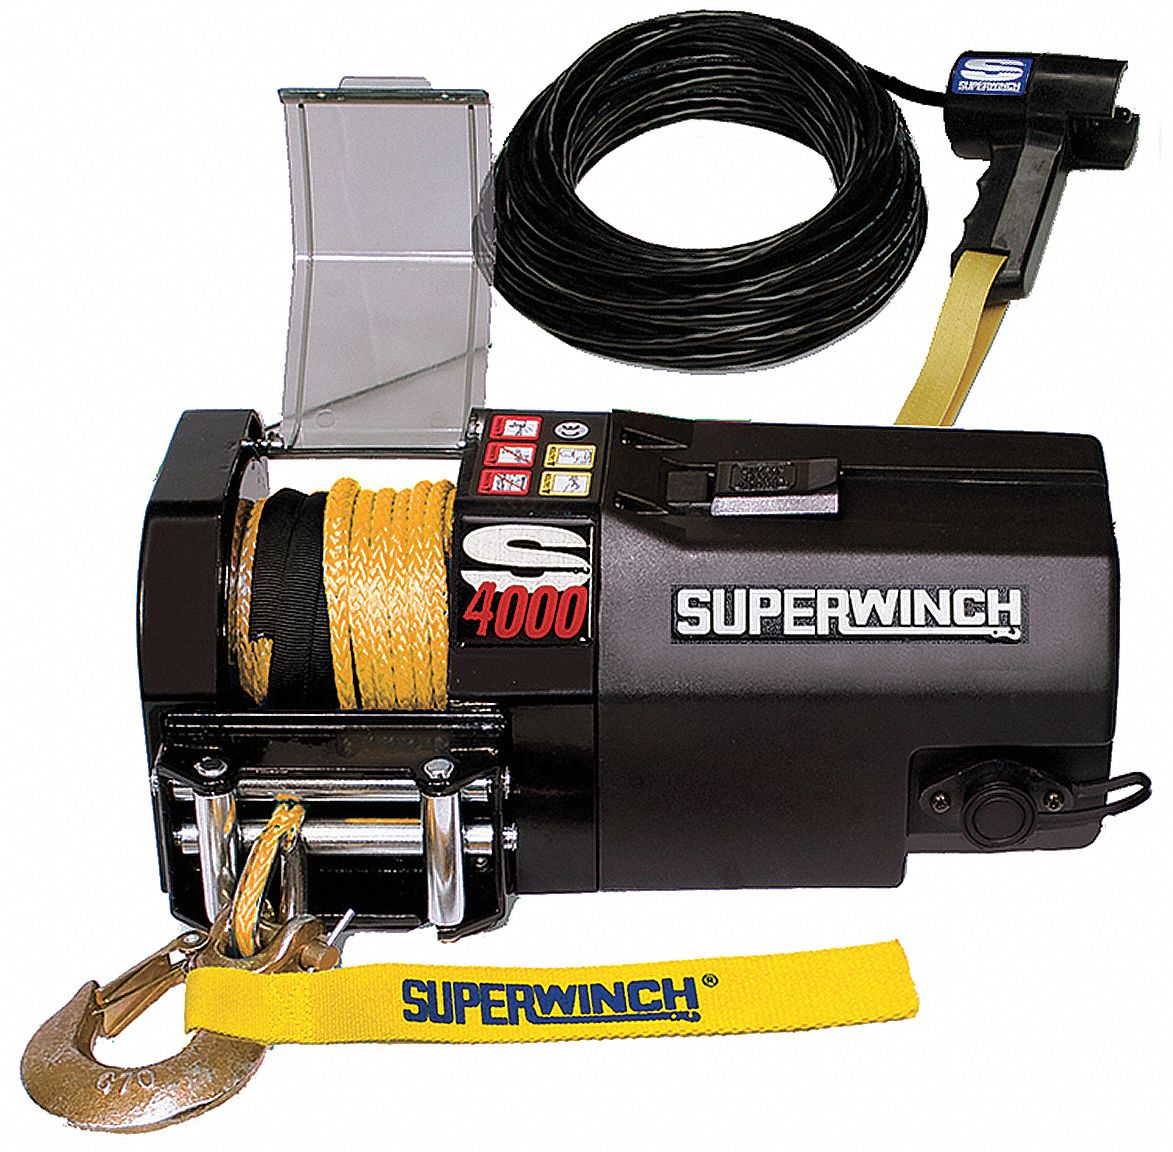 Superwinch Atv 3000 Winch Wiring Printable Wiring Diagram Schematic